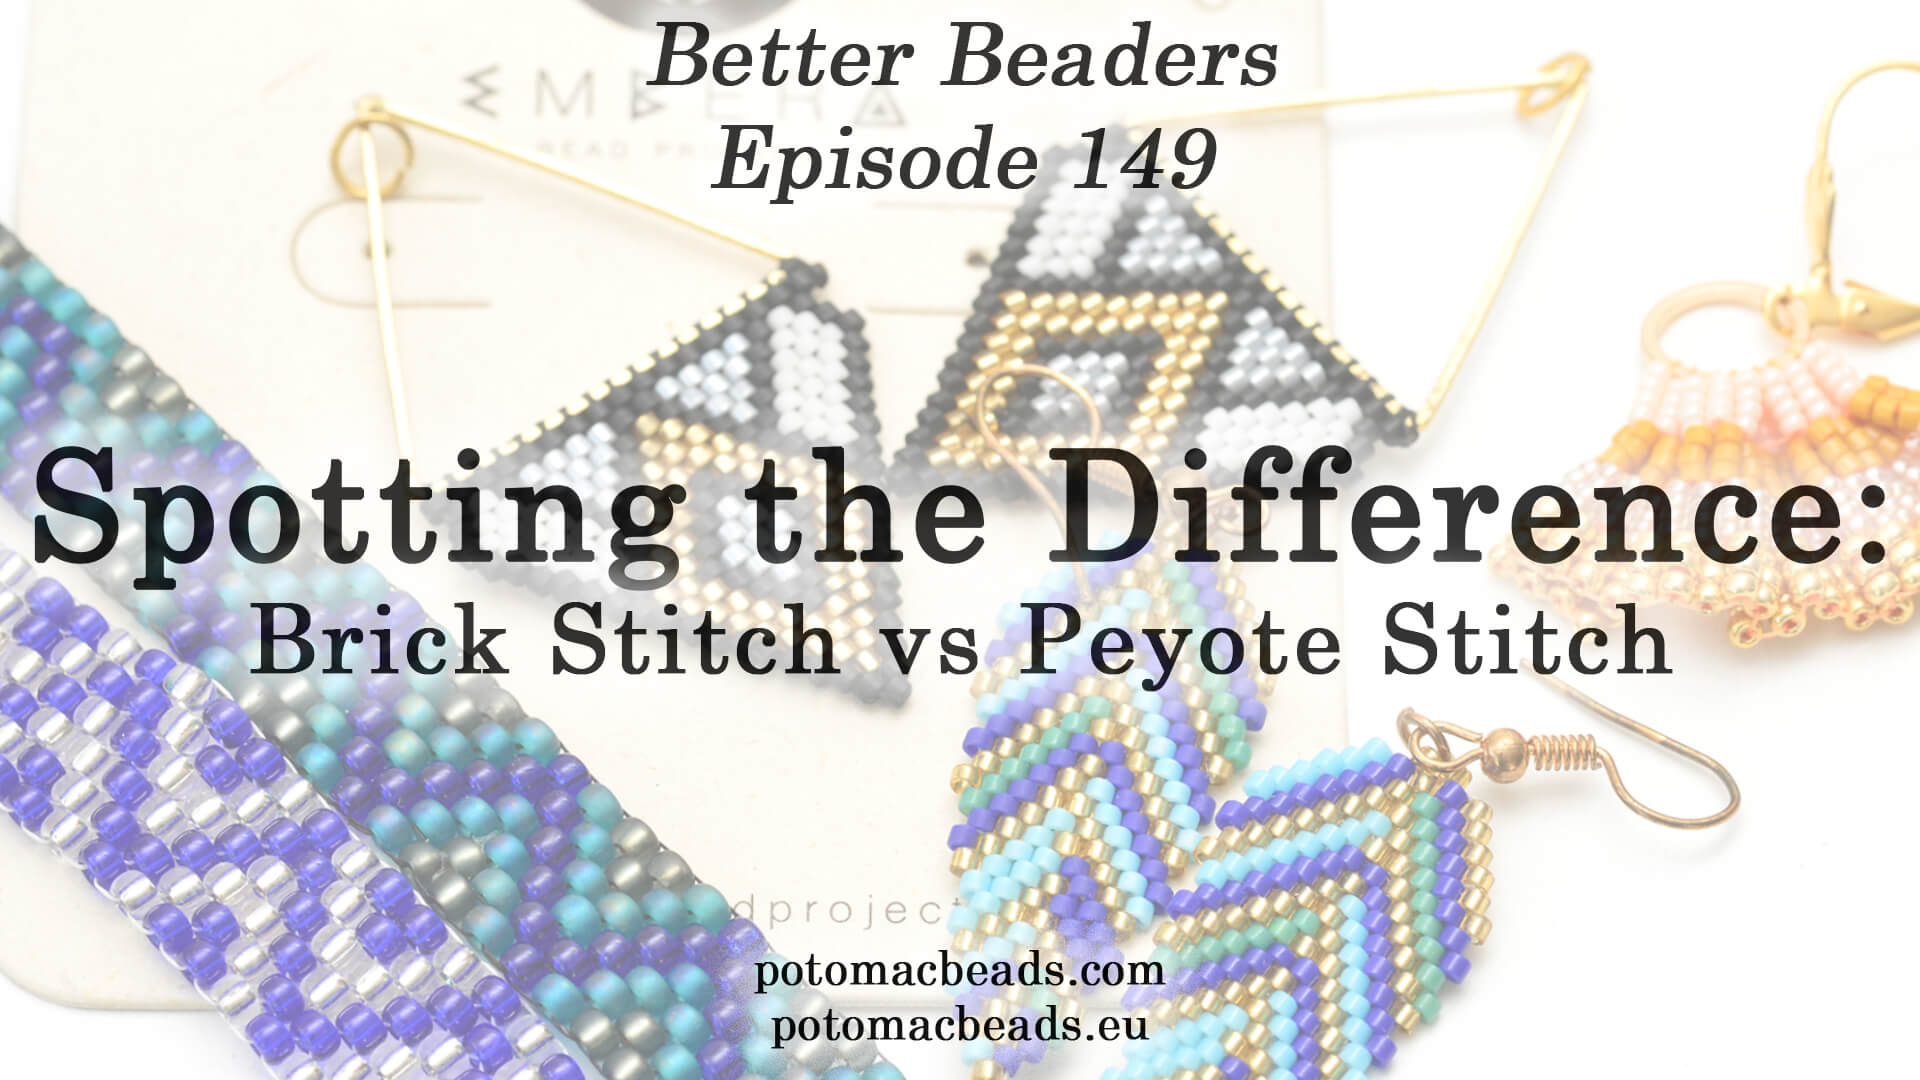 How to Bead / Better Beader Episodes / Better Beader Episode 149 - Spotting the Difference Between Peyote and Brick Stitches